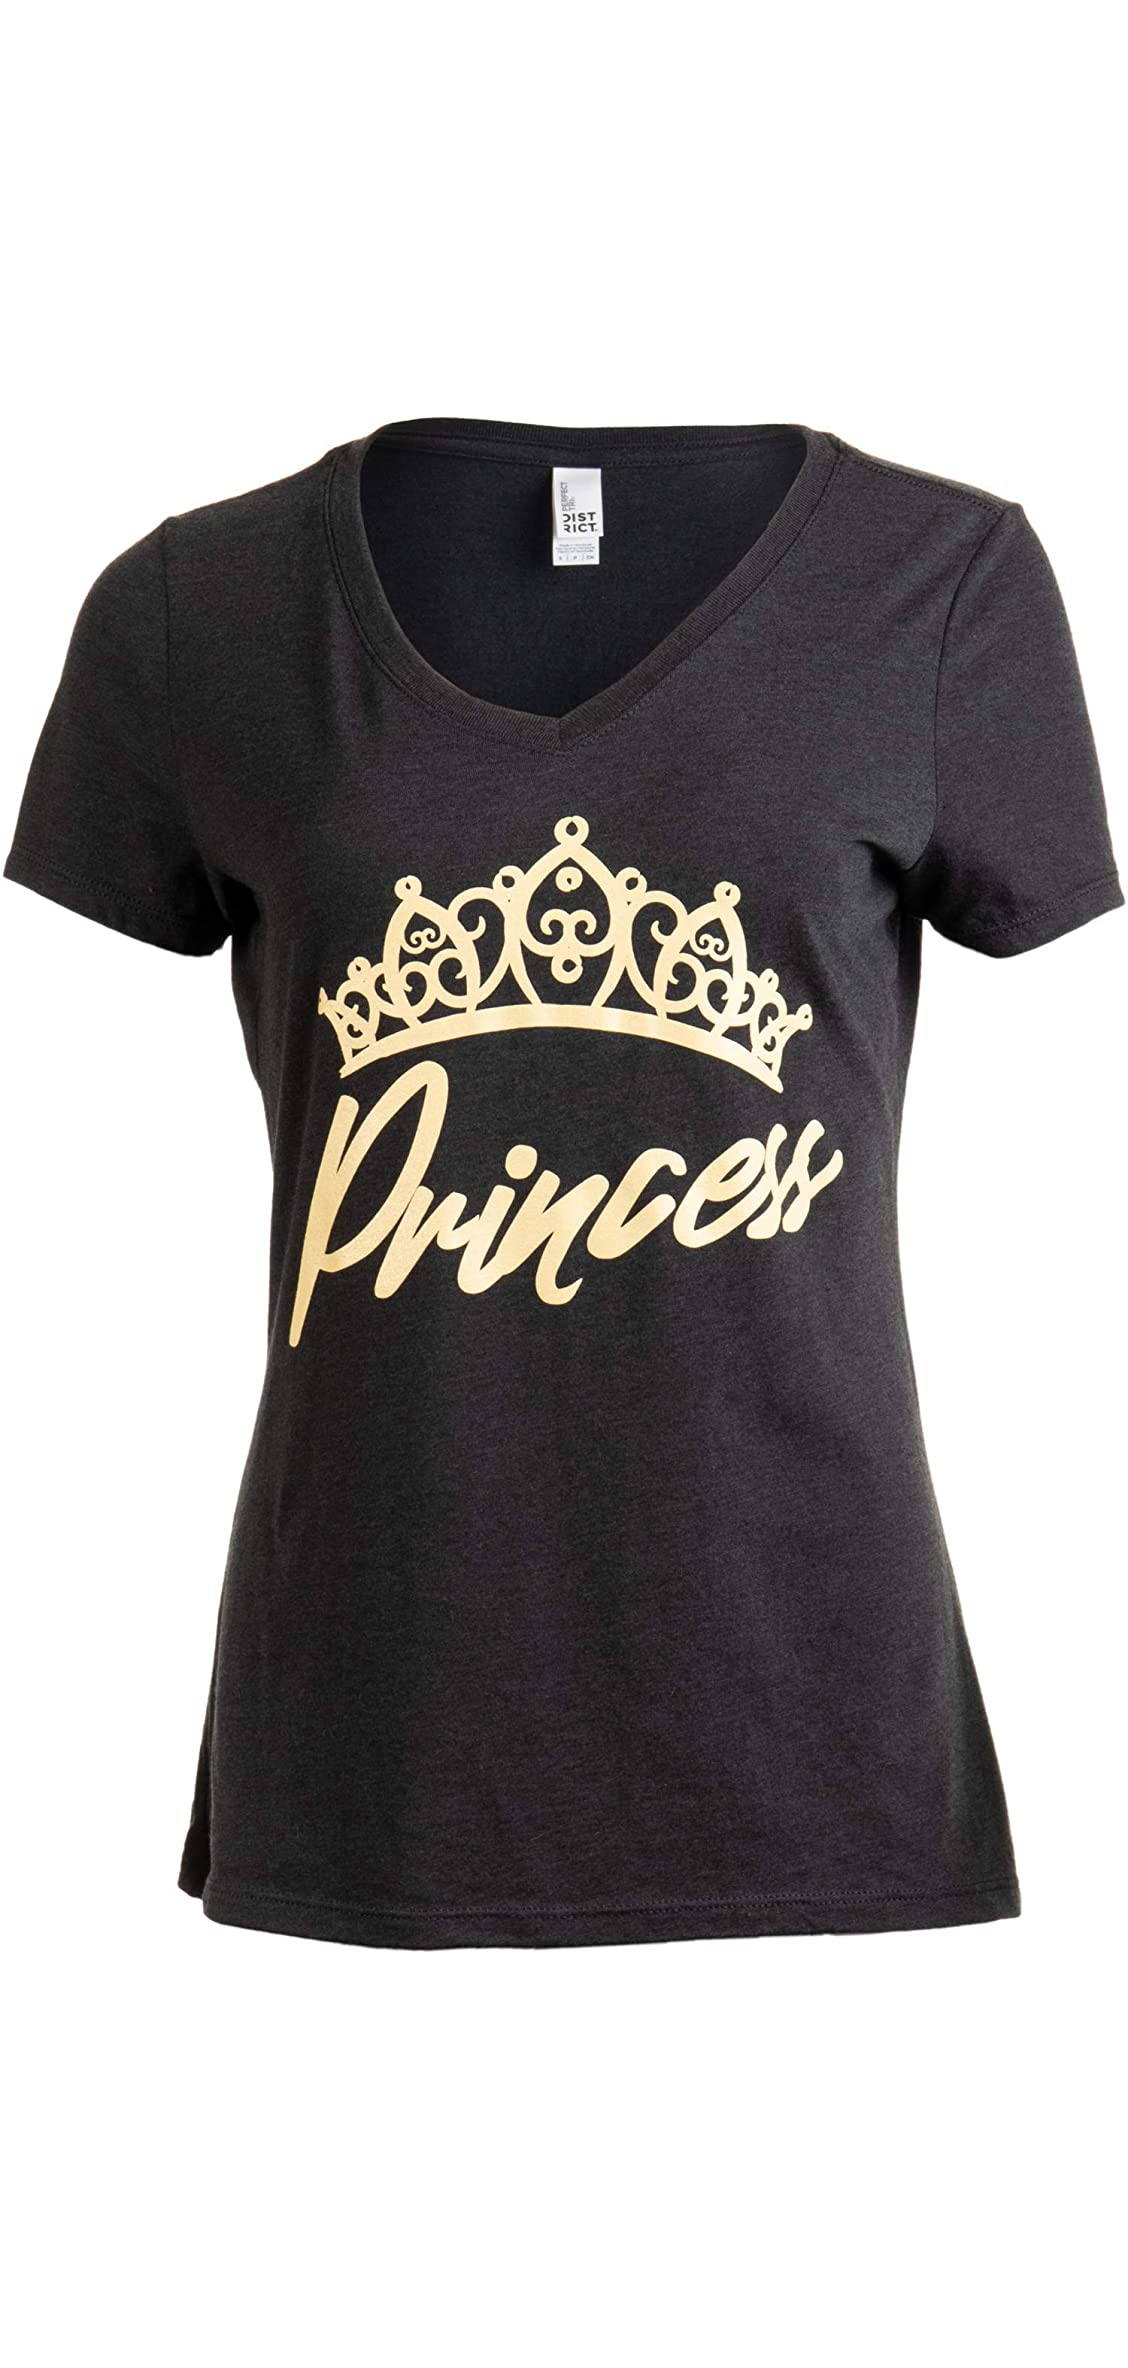 Princess  Cute, Funny Girly Royalty Tiara Crown Humor V-neck